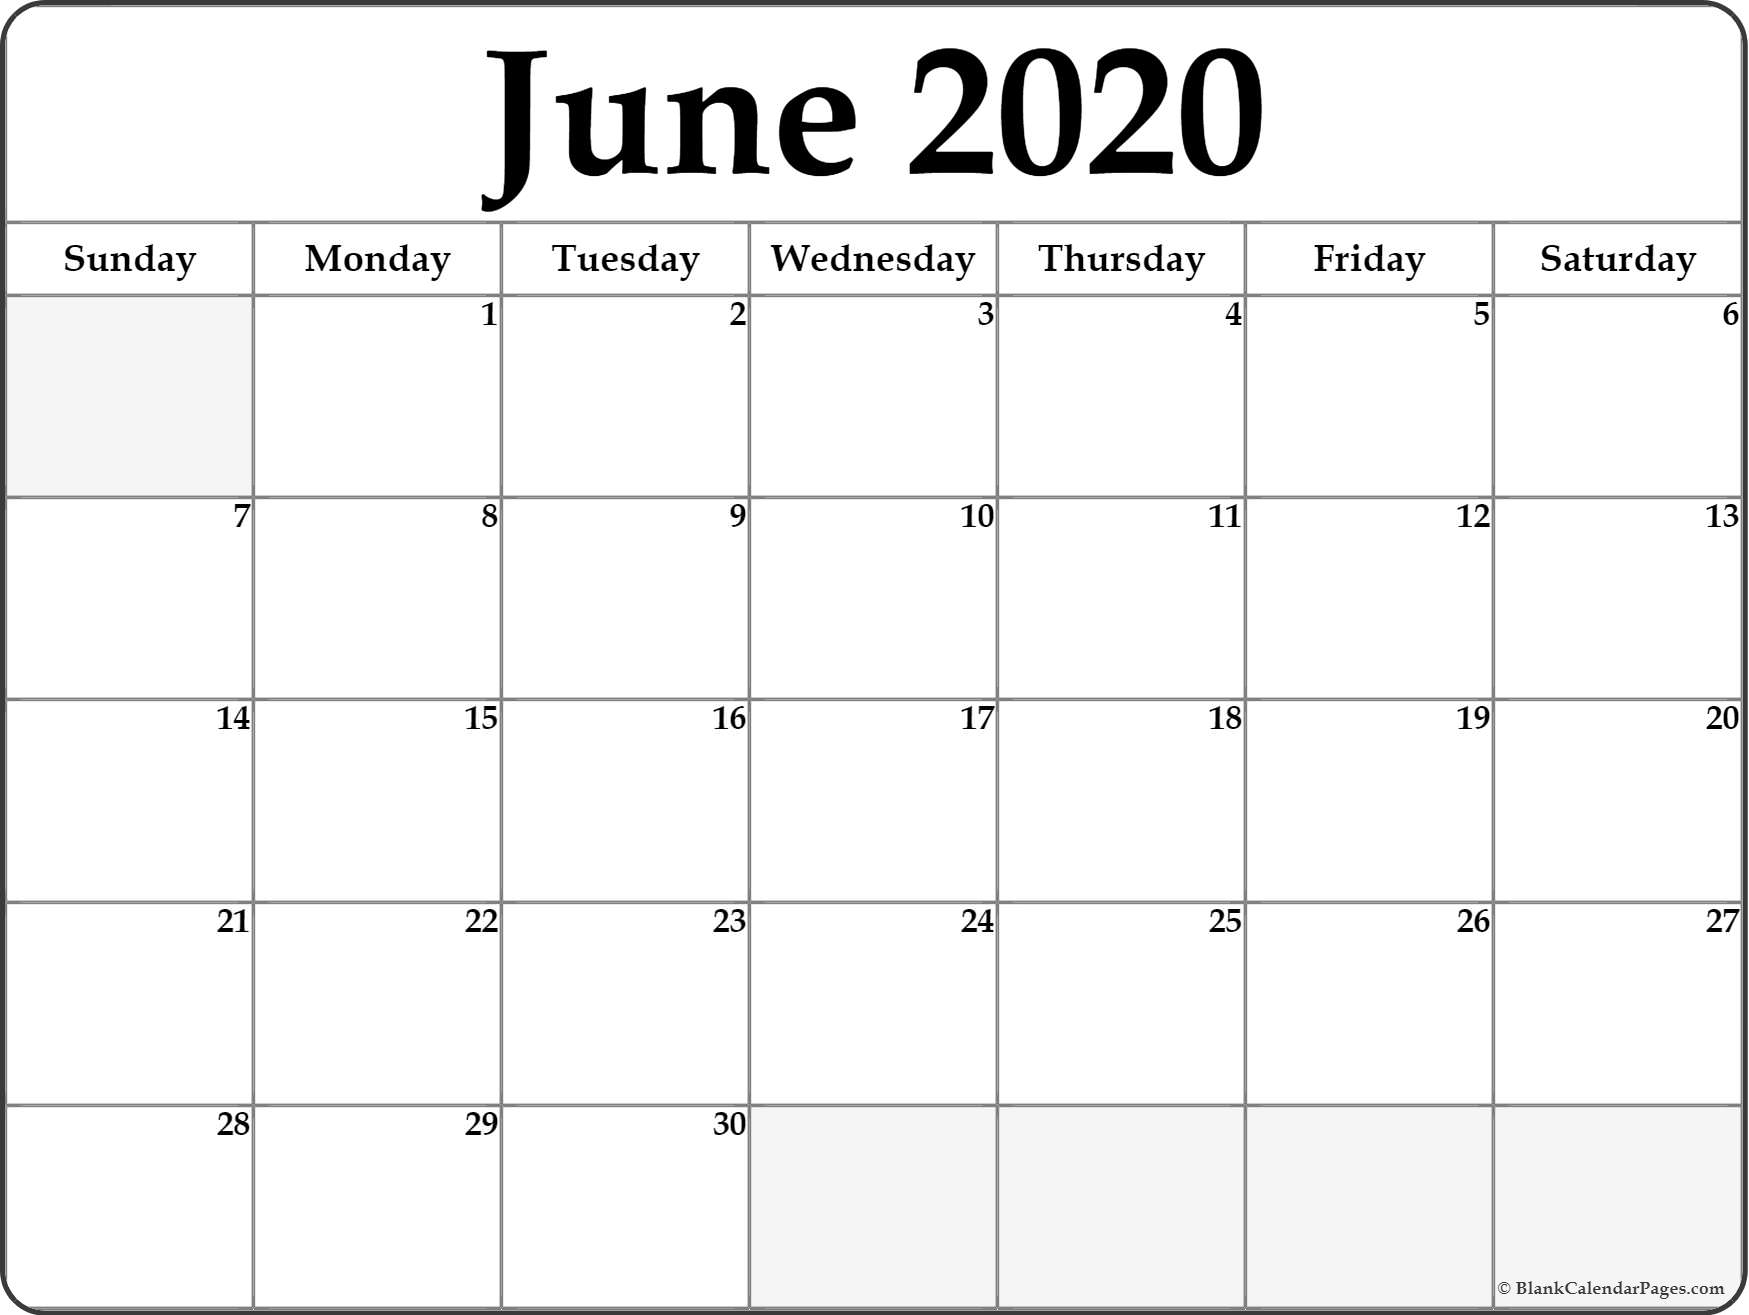 June 2020 Calendar | Free Printable Monthly Calendars throughout Free Printable Calander 2020 Victoria Wiht Spaces To Write